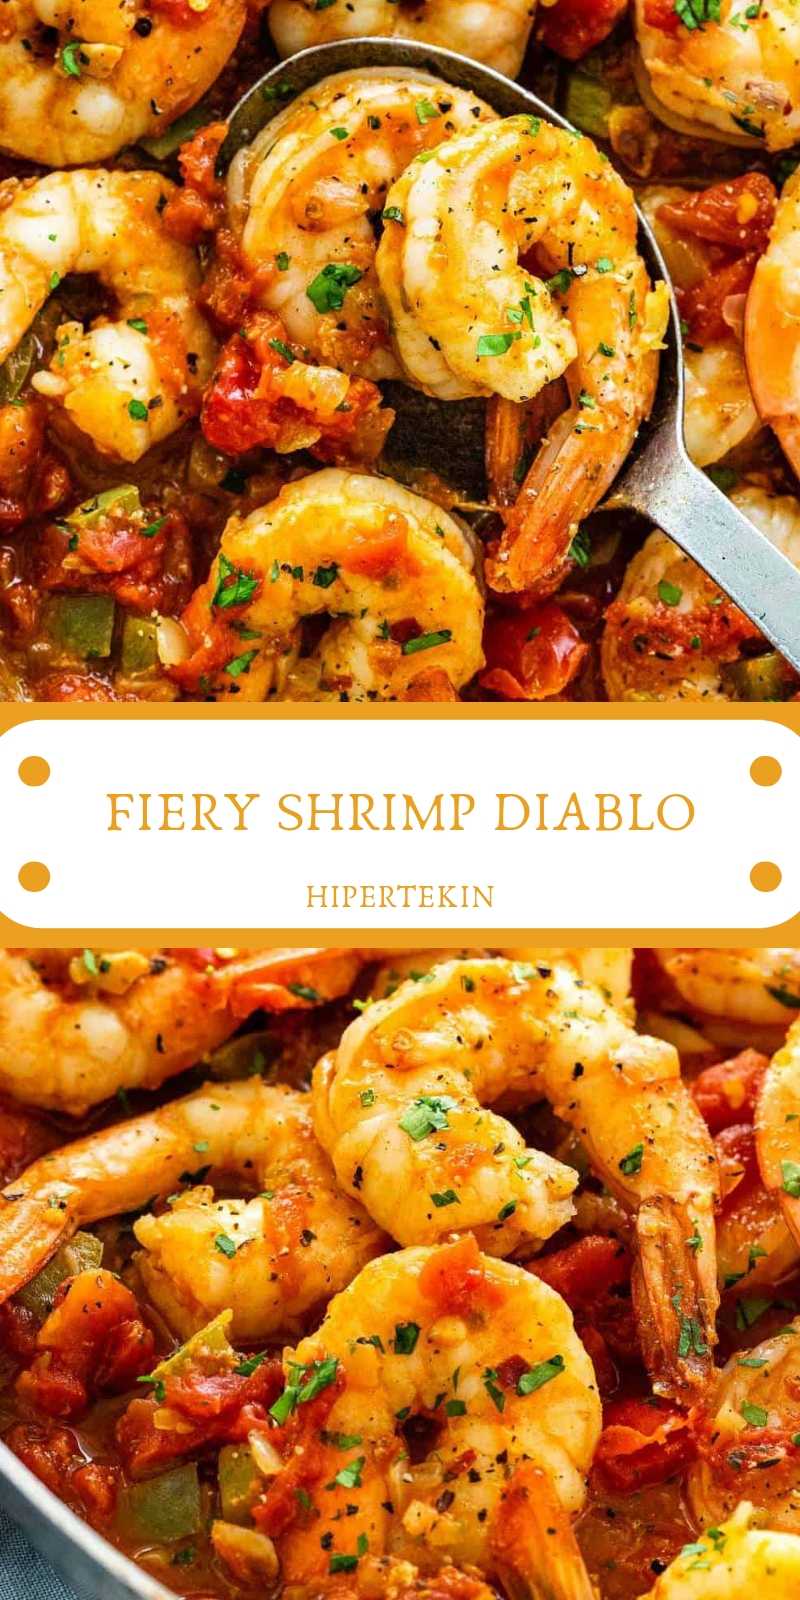 FIERY SHRIMP DIABLO